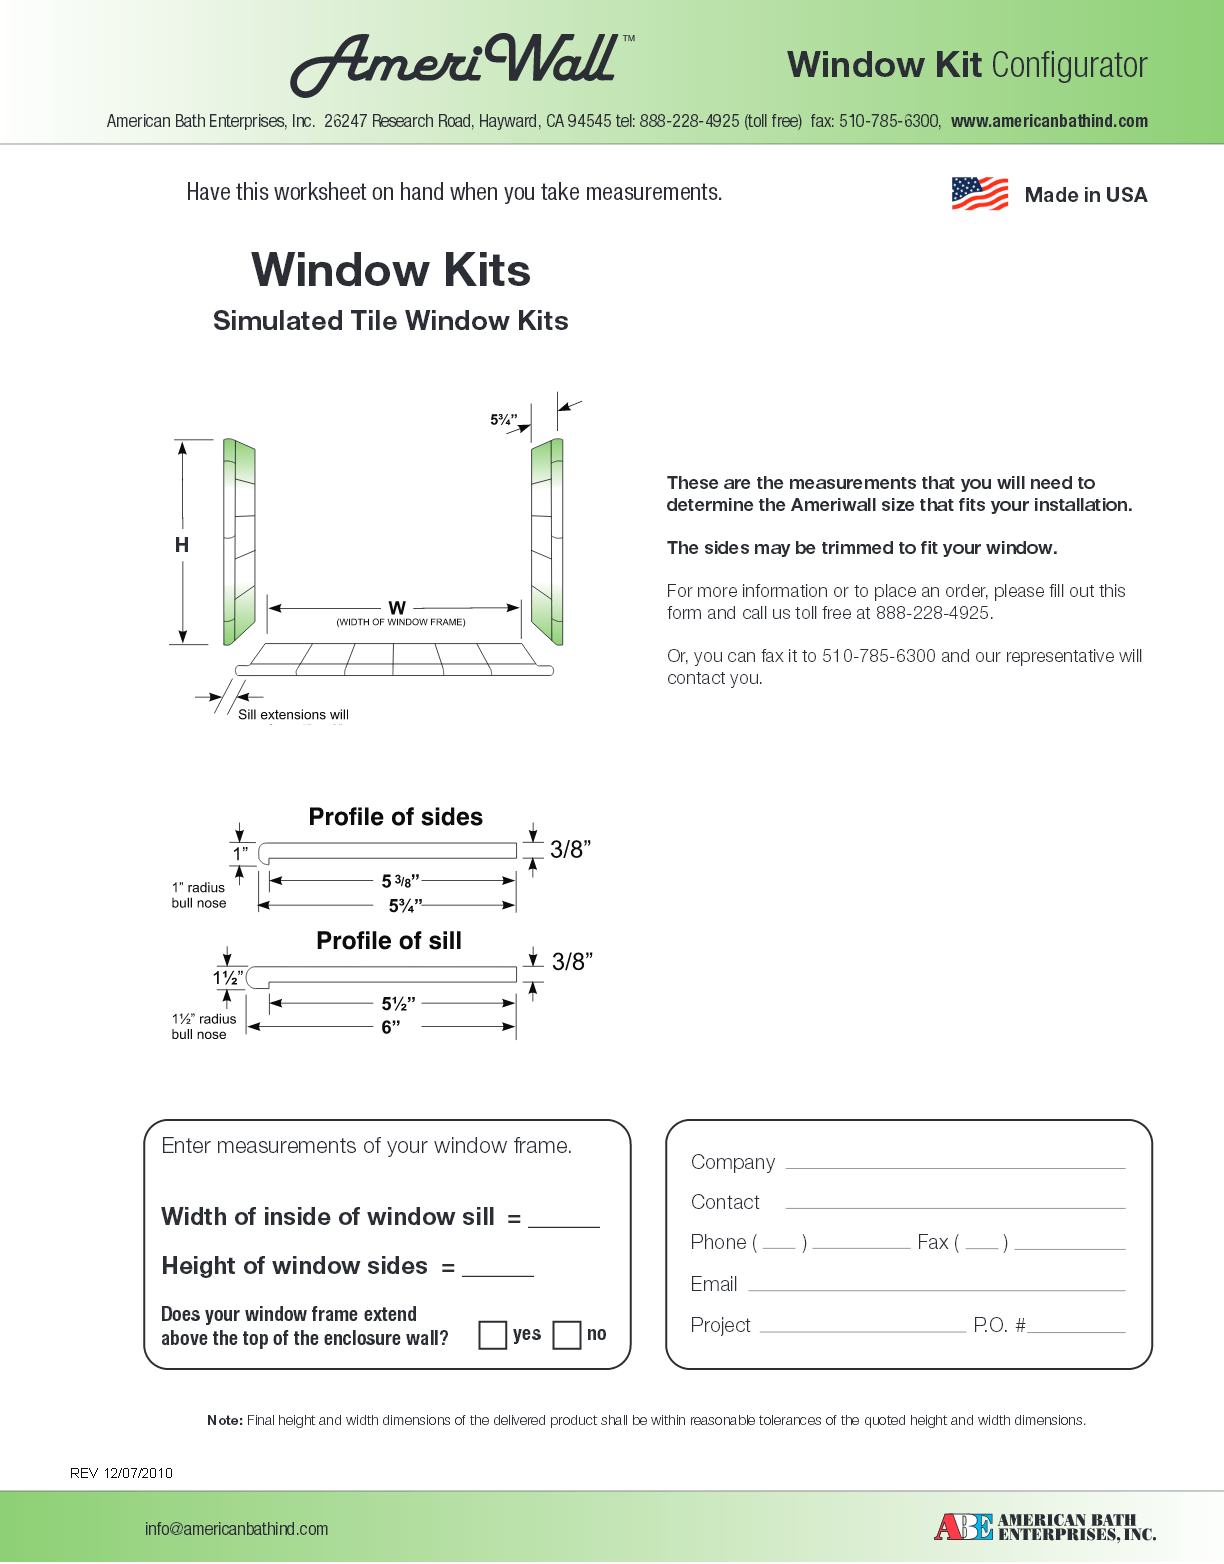 Ameriwall window kit